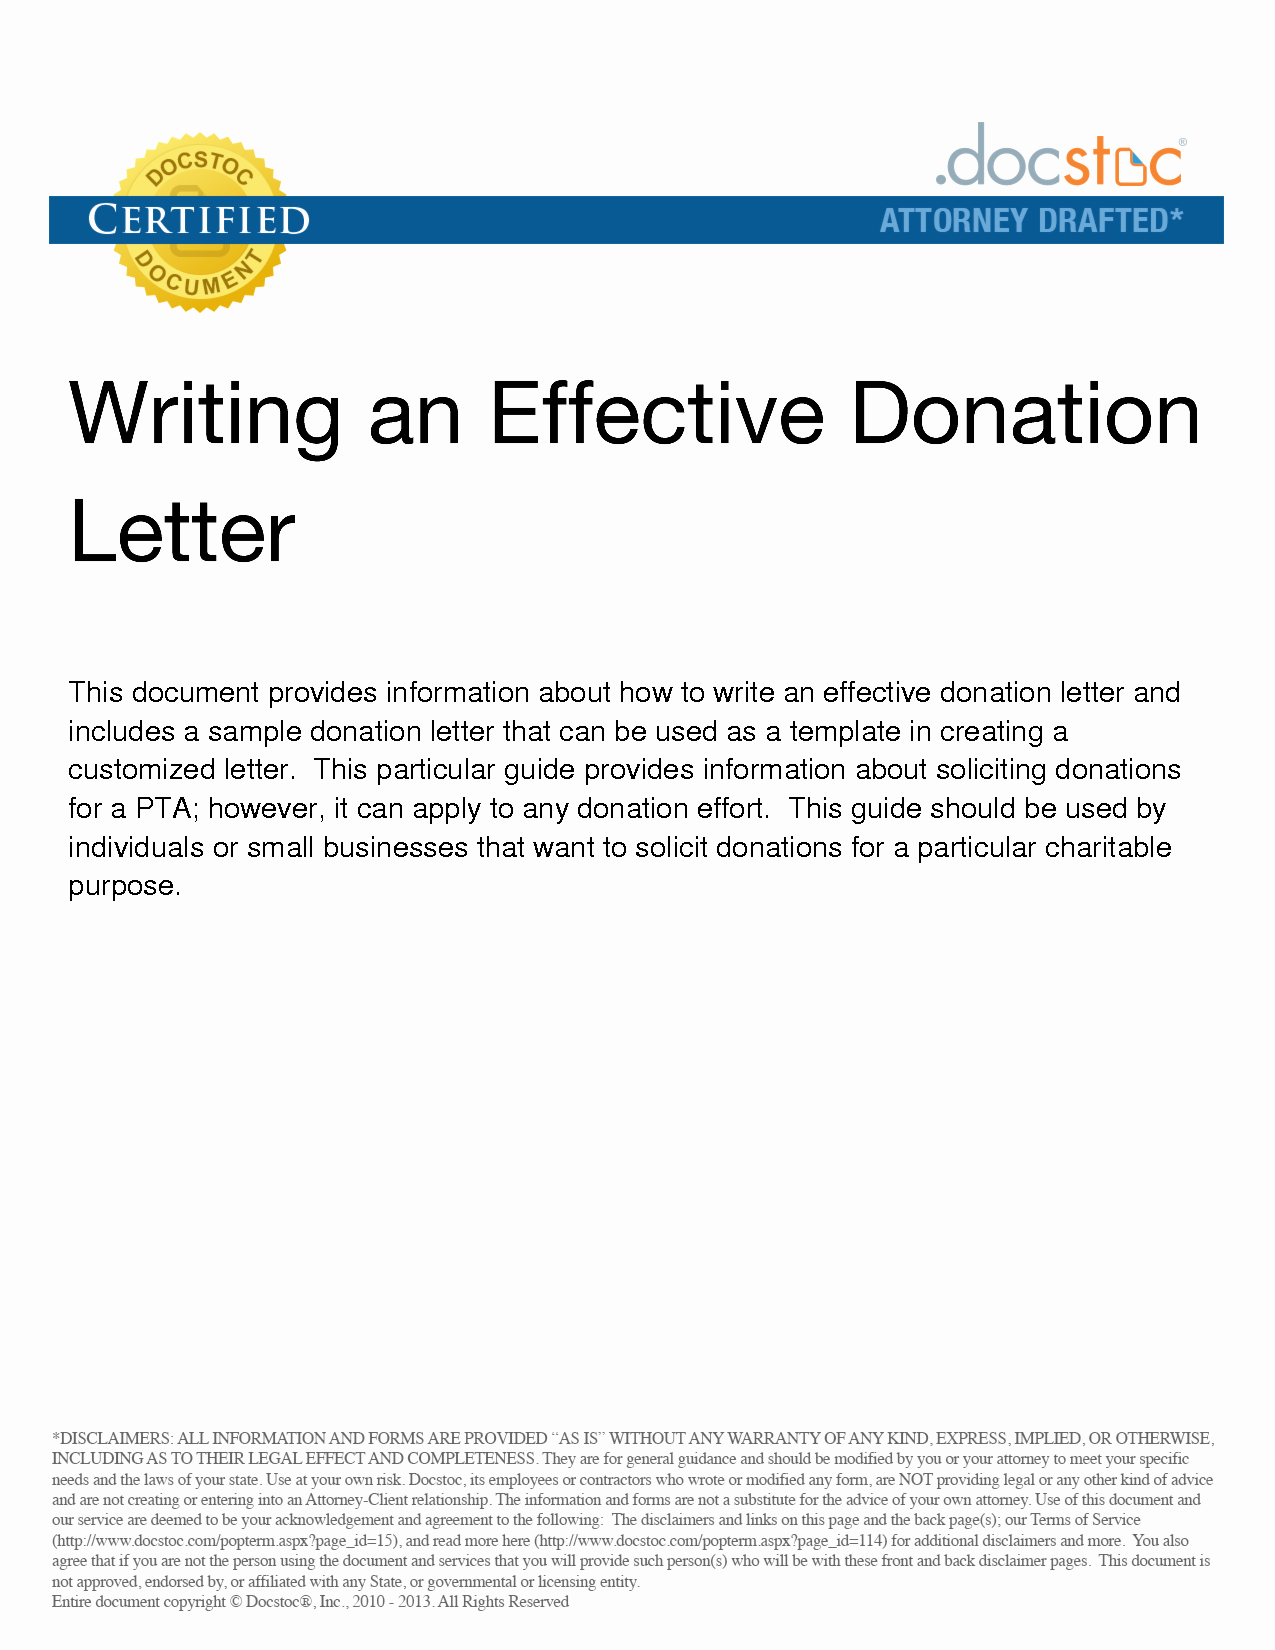 Letter asking for Donations New Writing An Effective Donation Letter Ideas